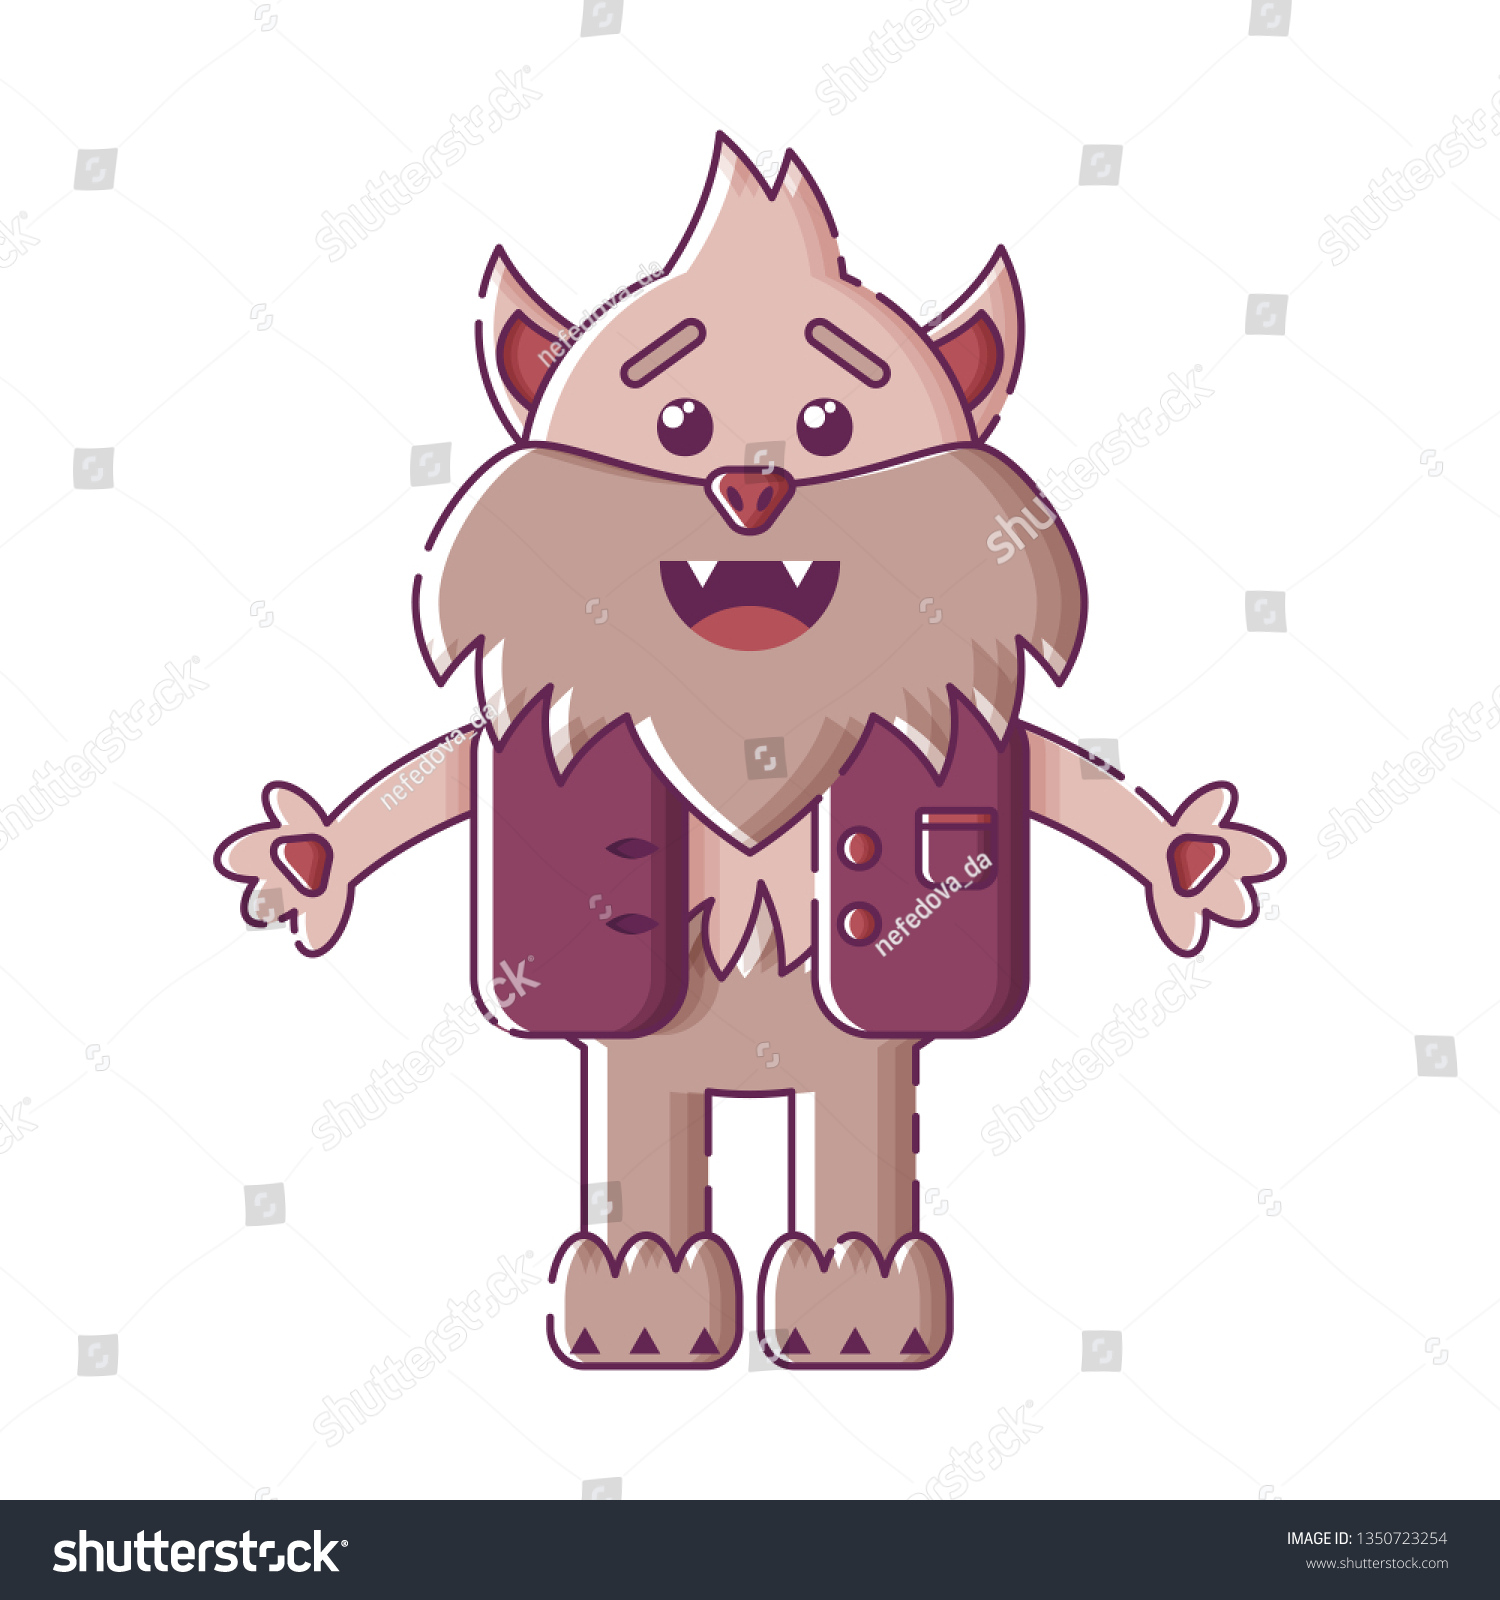 a70fa25dd Cute isolated laughing werewolf in a west. Sticker, patch, badge, pin or.